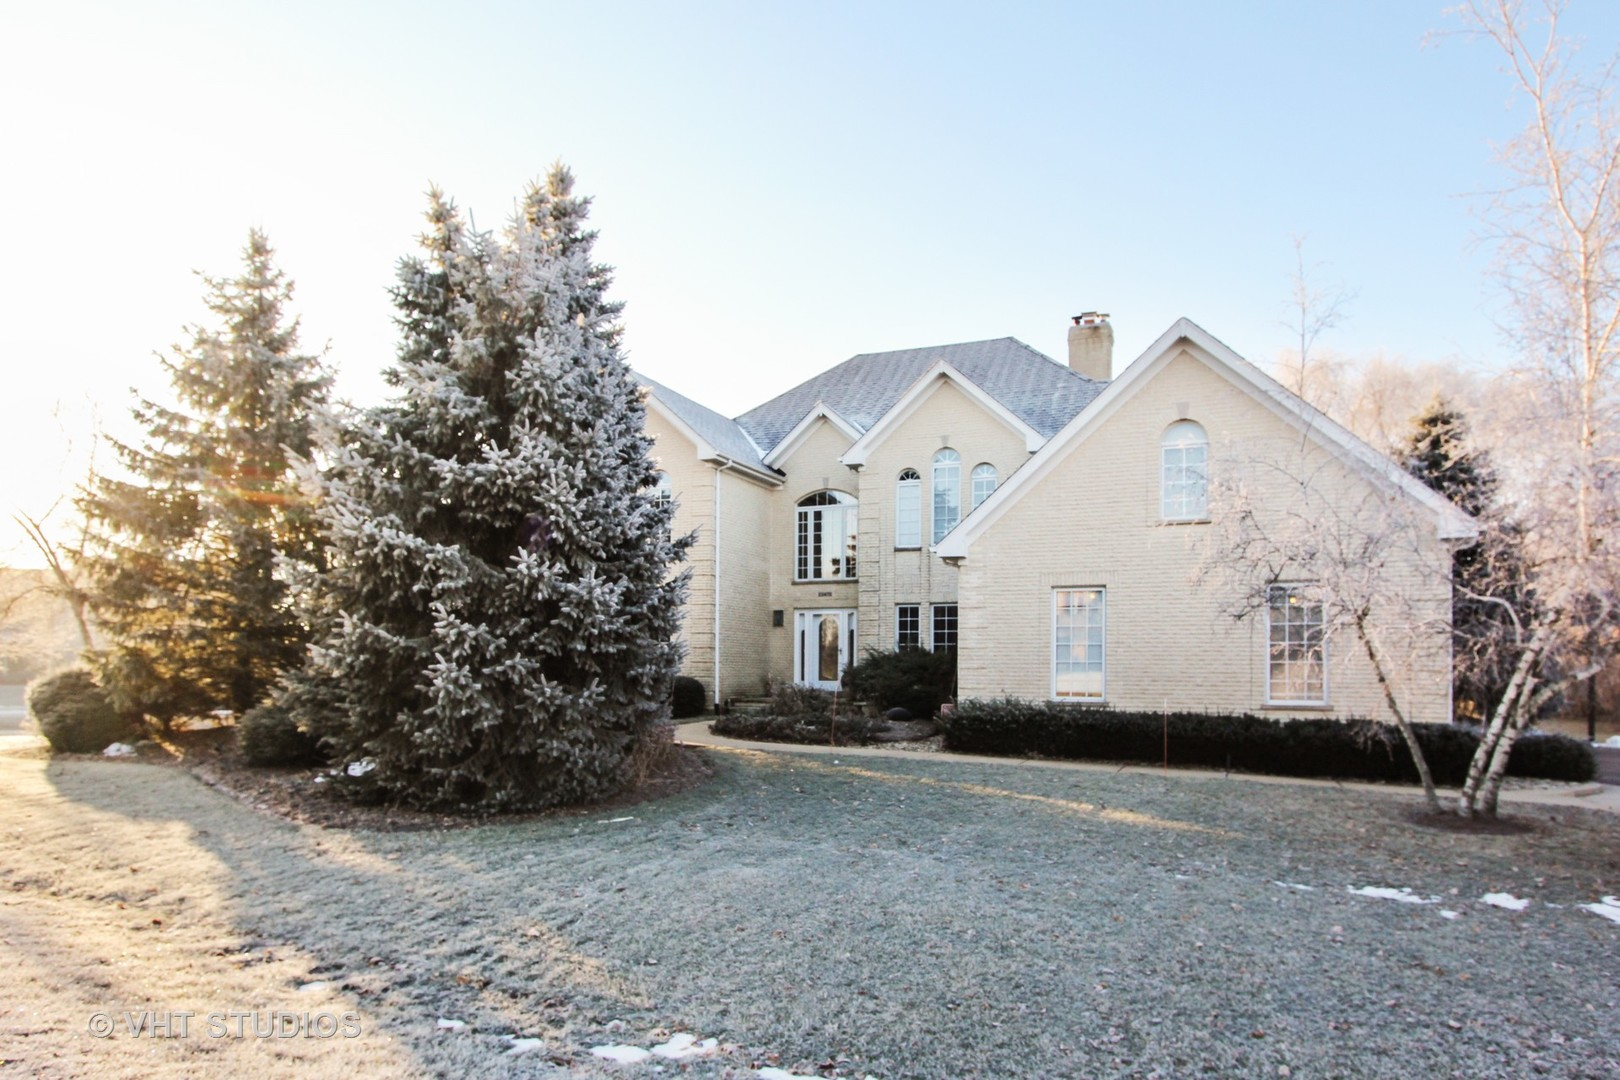 23475 West Newhaven Drive, Hawthorn Woods, Illinois 60047